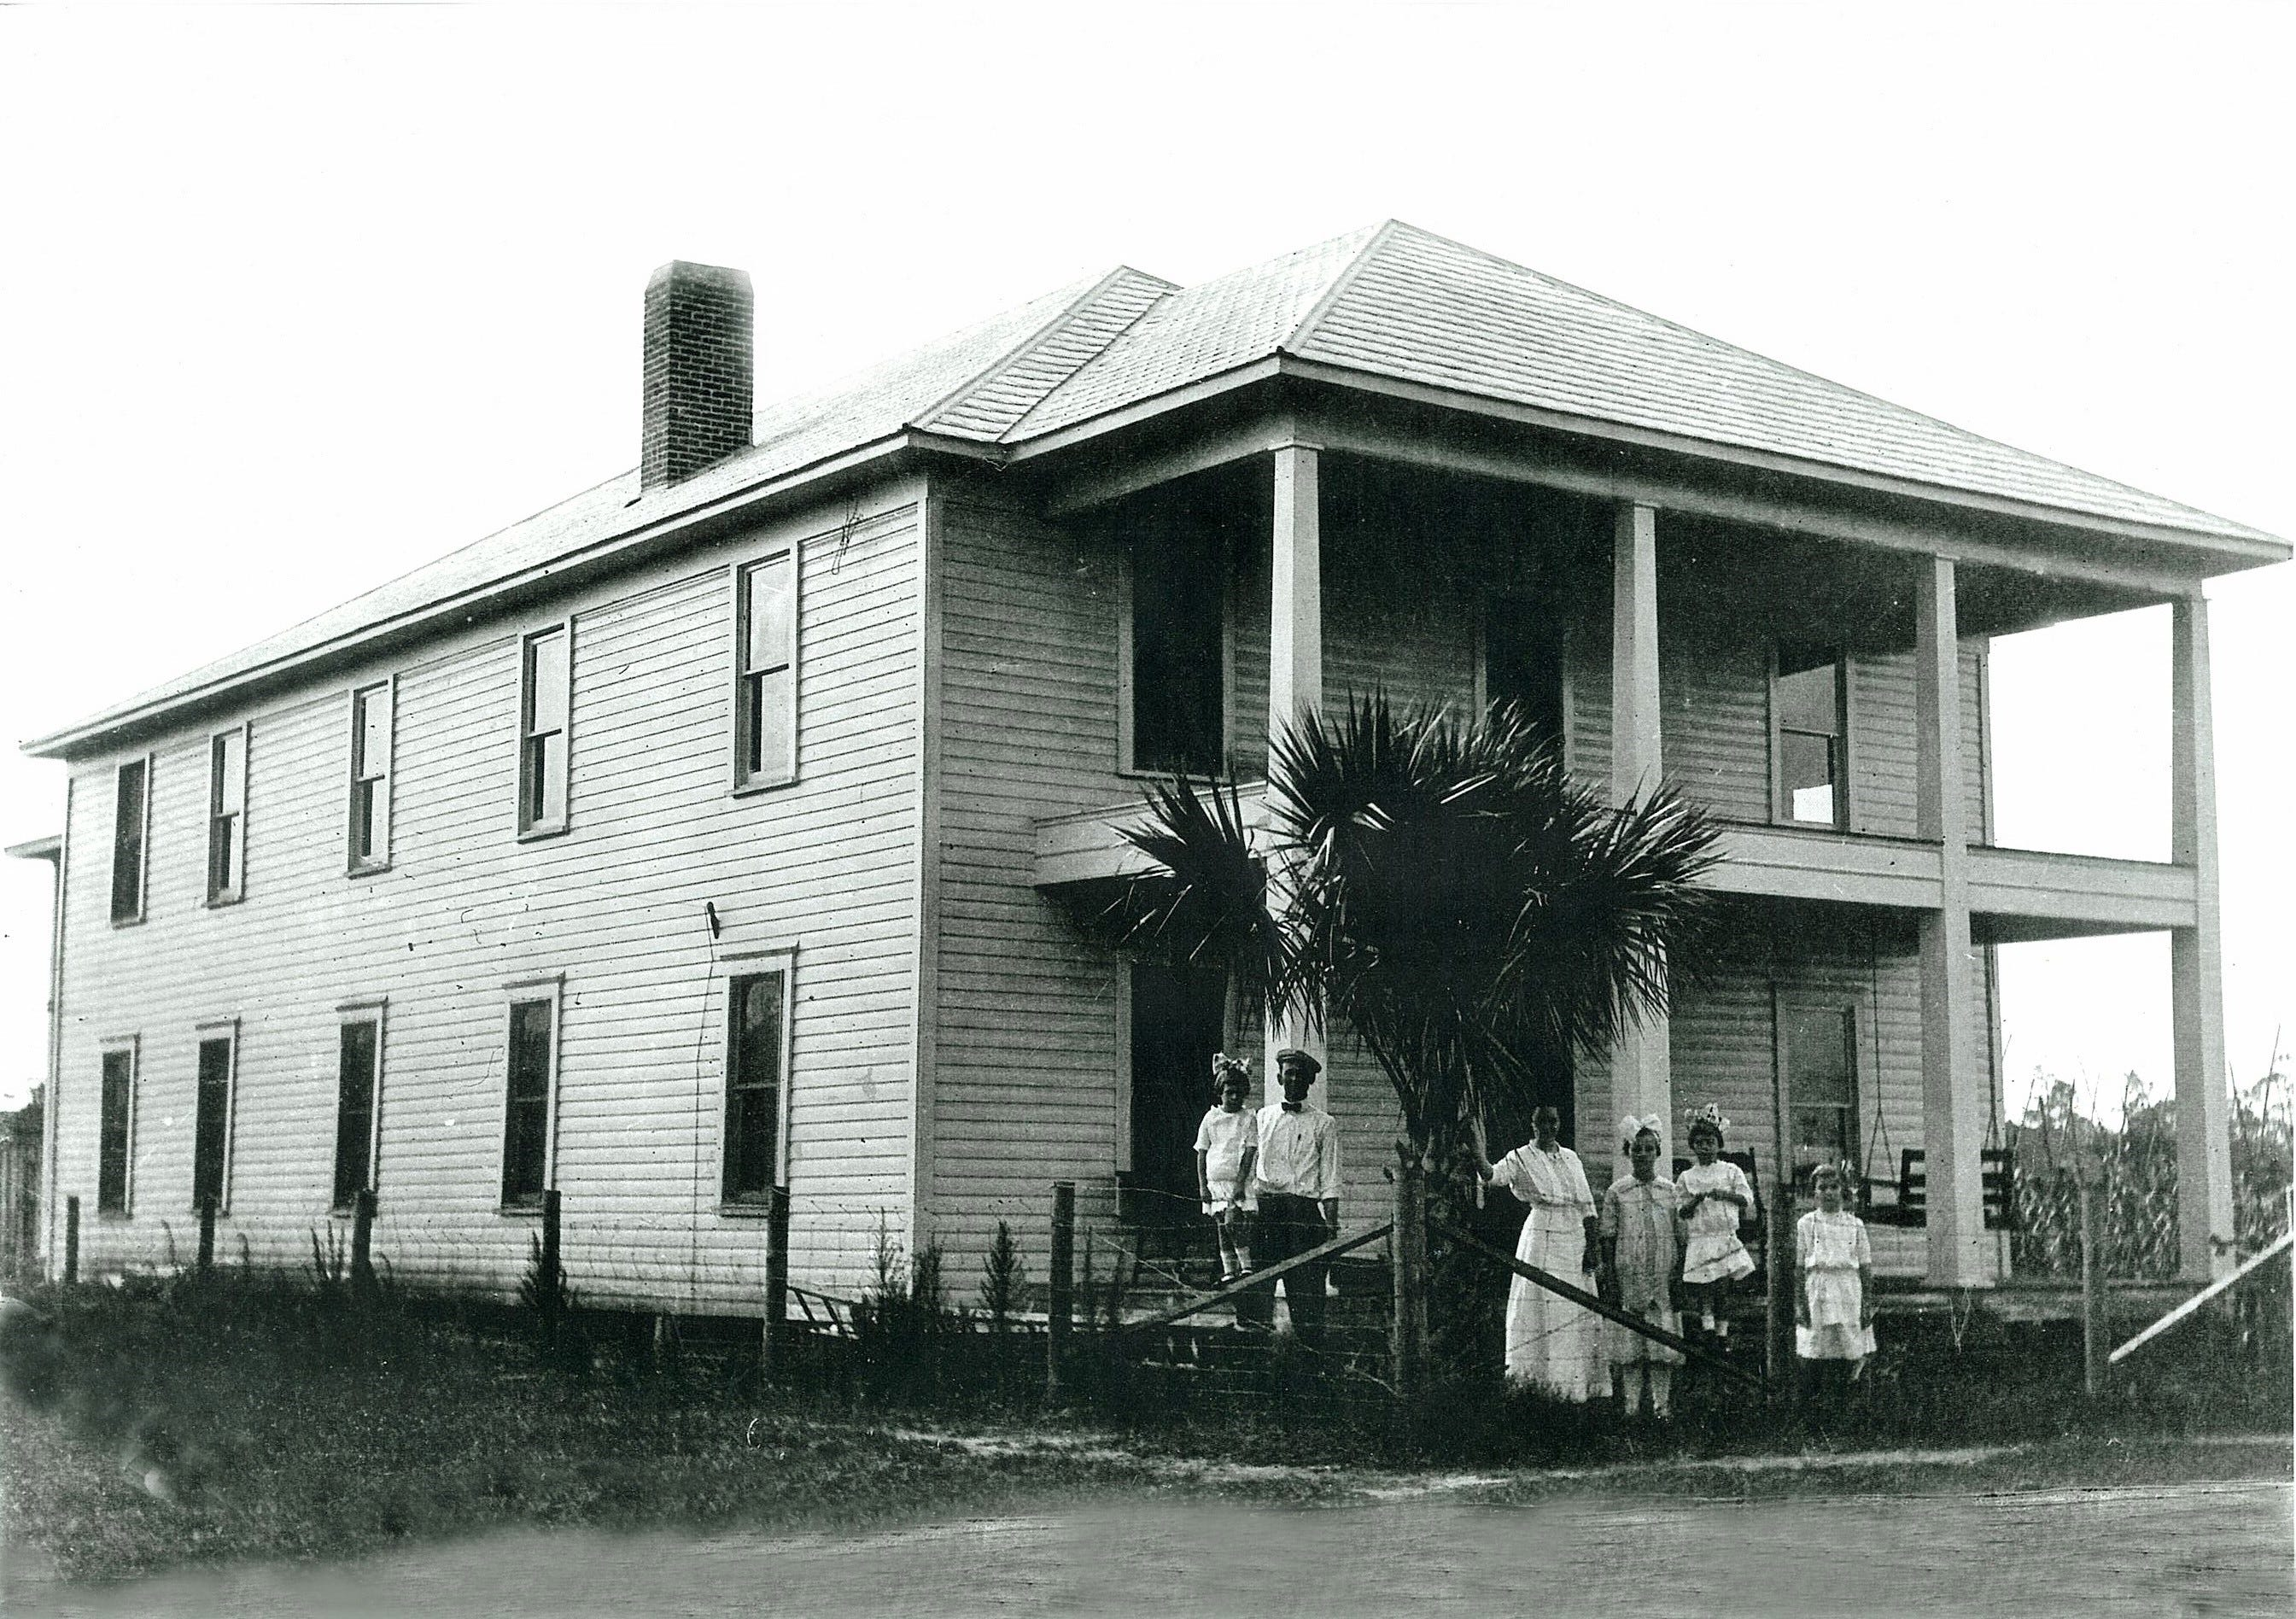 In 1915, the Dixie Highway was built through Espanola, and by then Espanola had this hotel, along with a post office, cafe, rooming house, barbershop, dry goods store, school and mail route. Espanola is an unincorporated community in Flagler County, which is located along central Florida's Atlantic Coast.